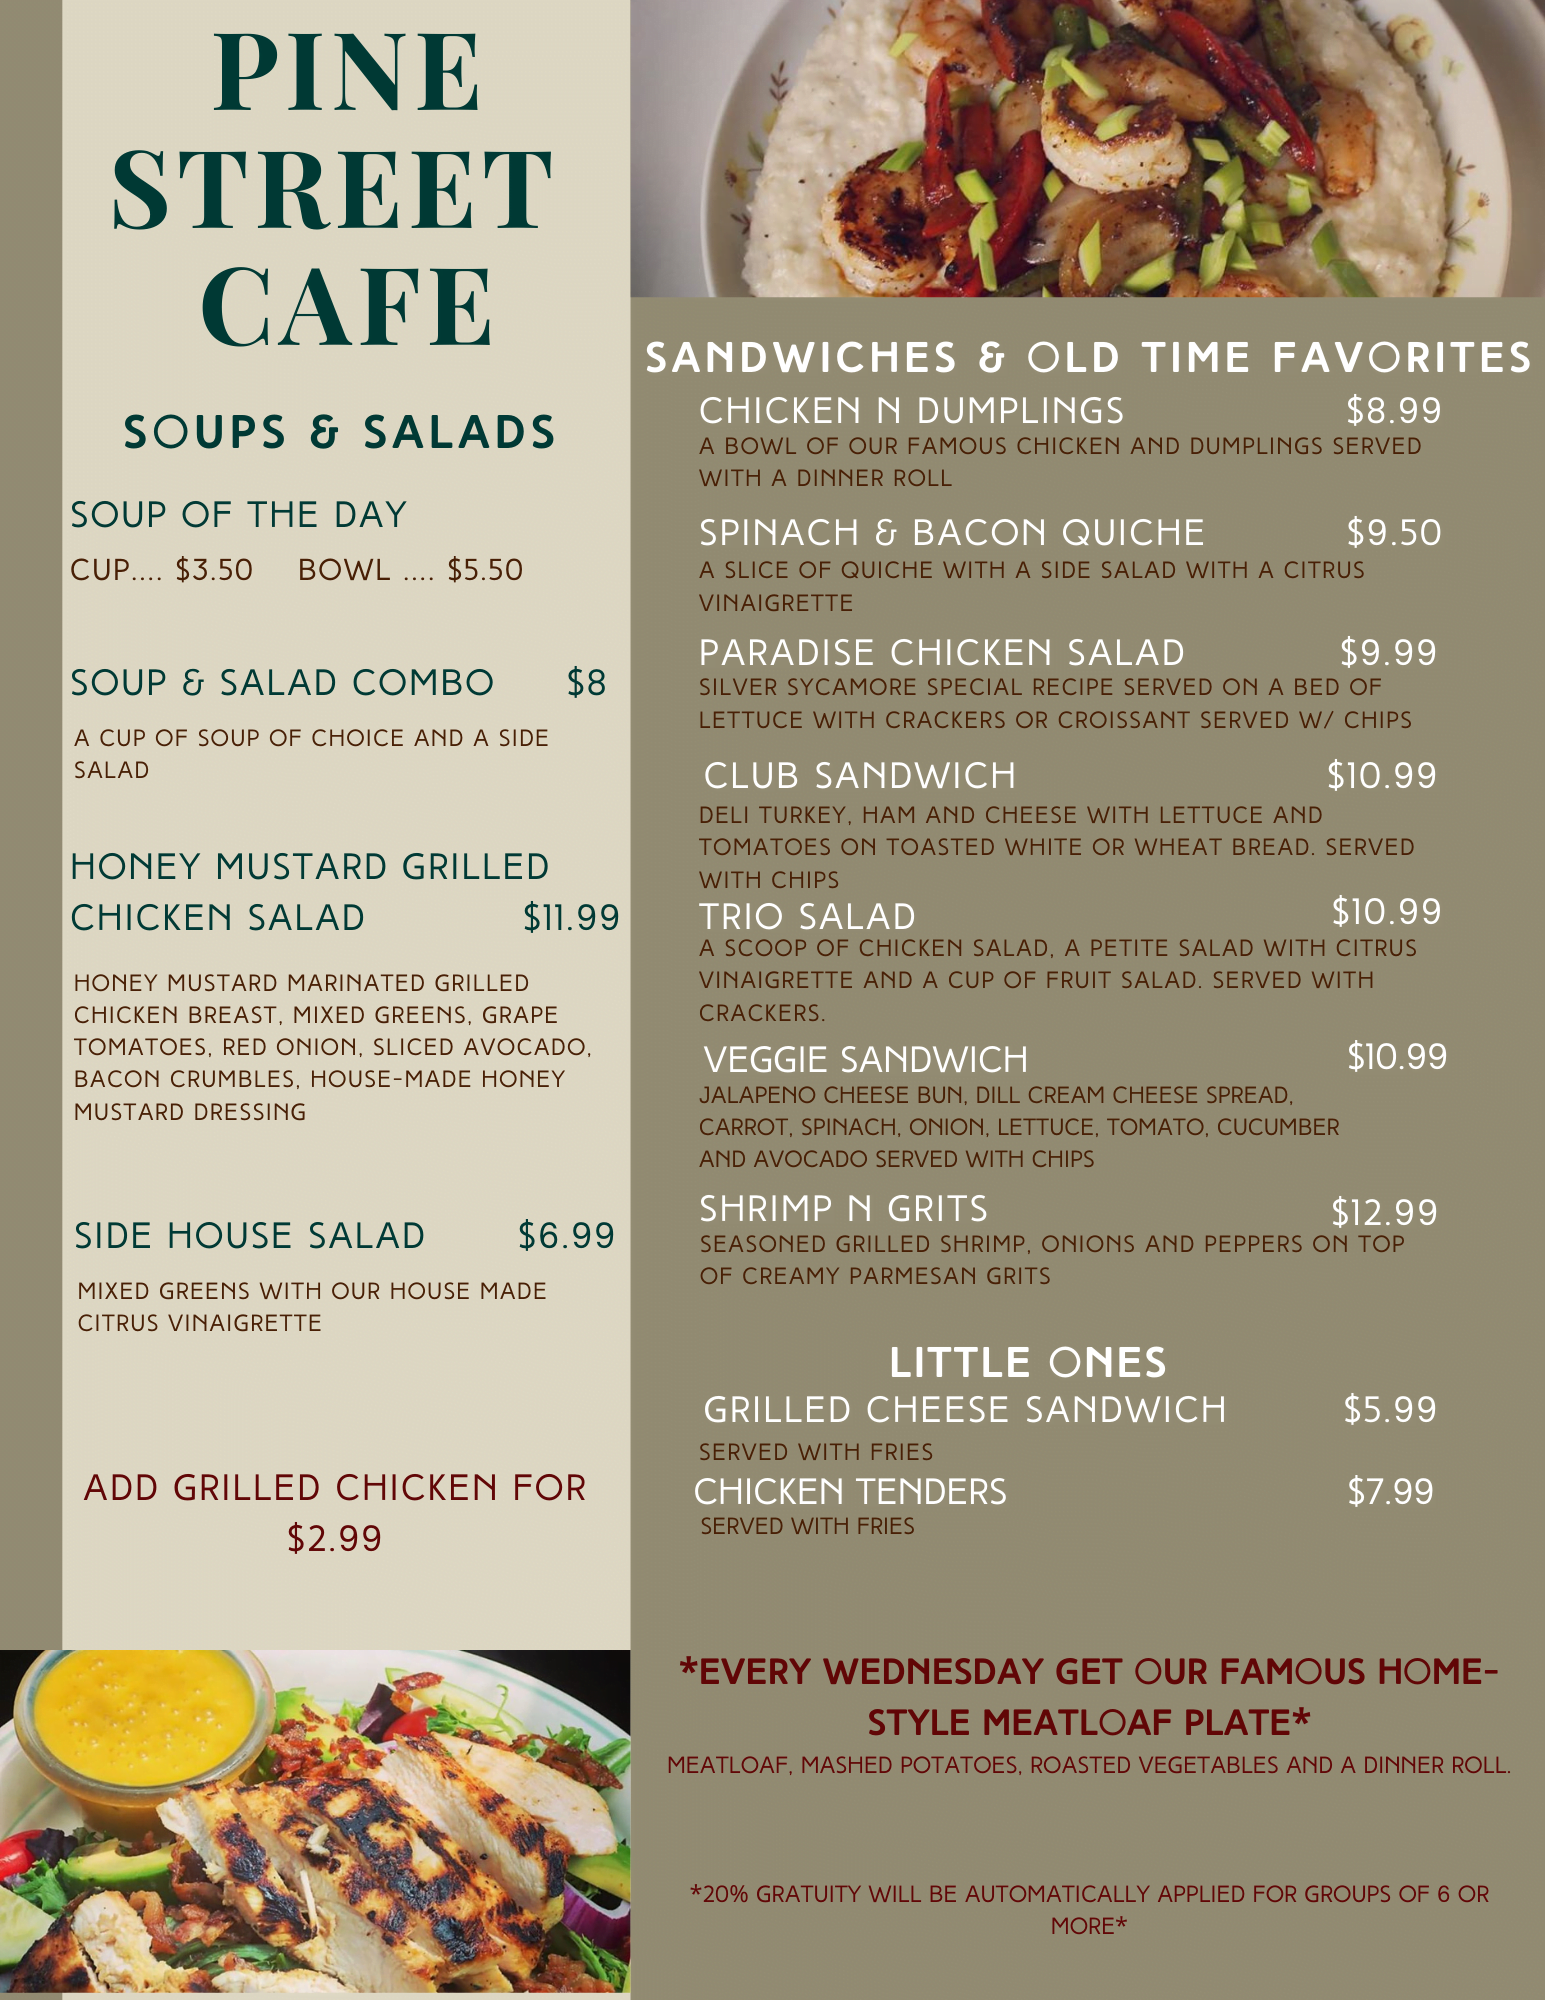 pine street cafe lunch menu soups salads and sandwiches